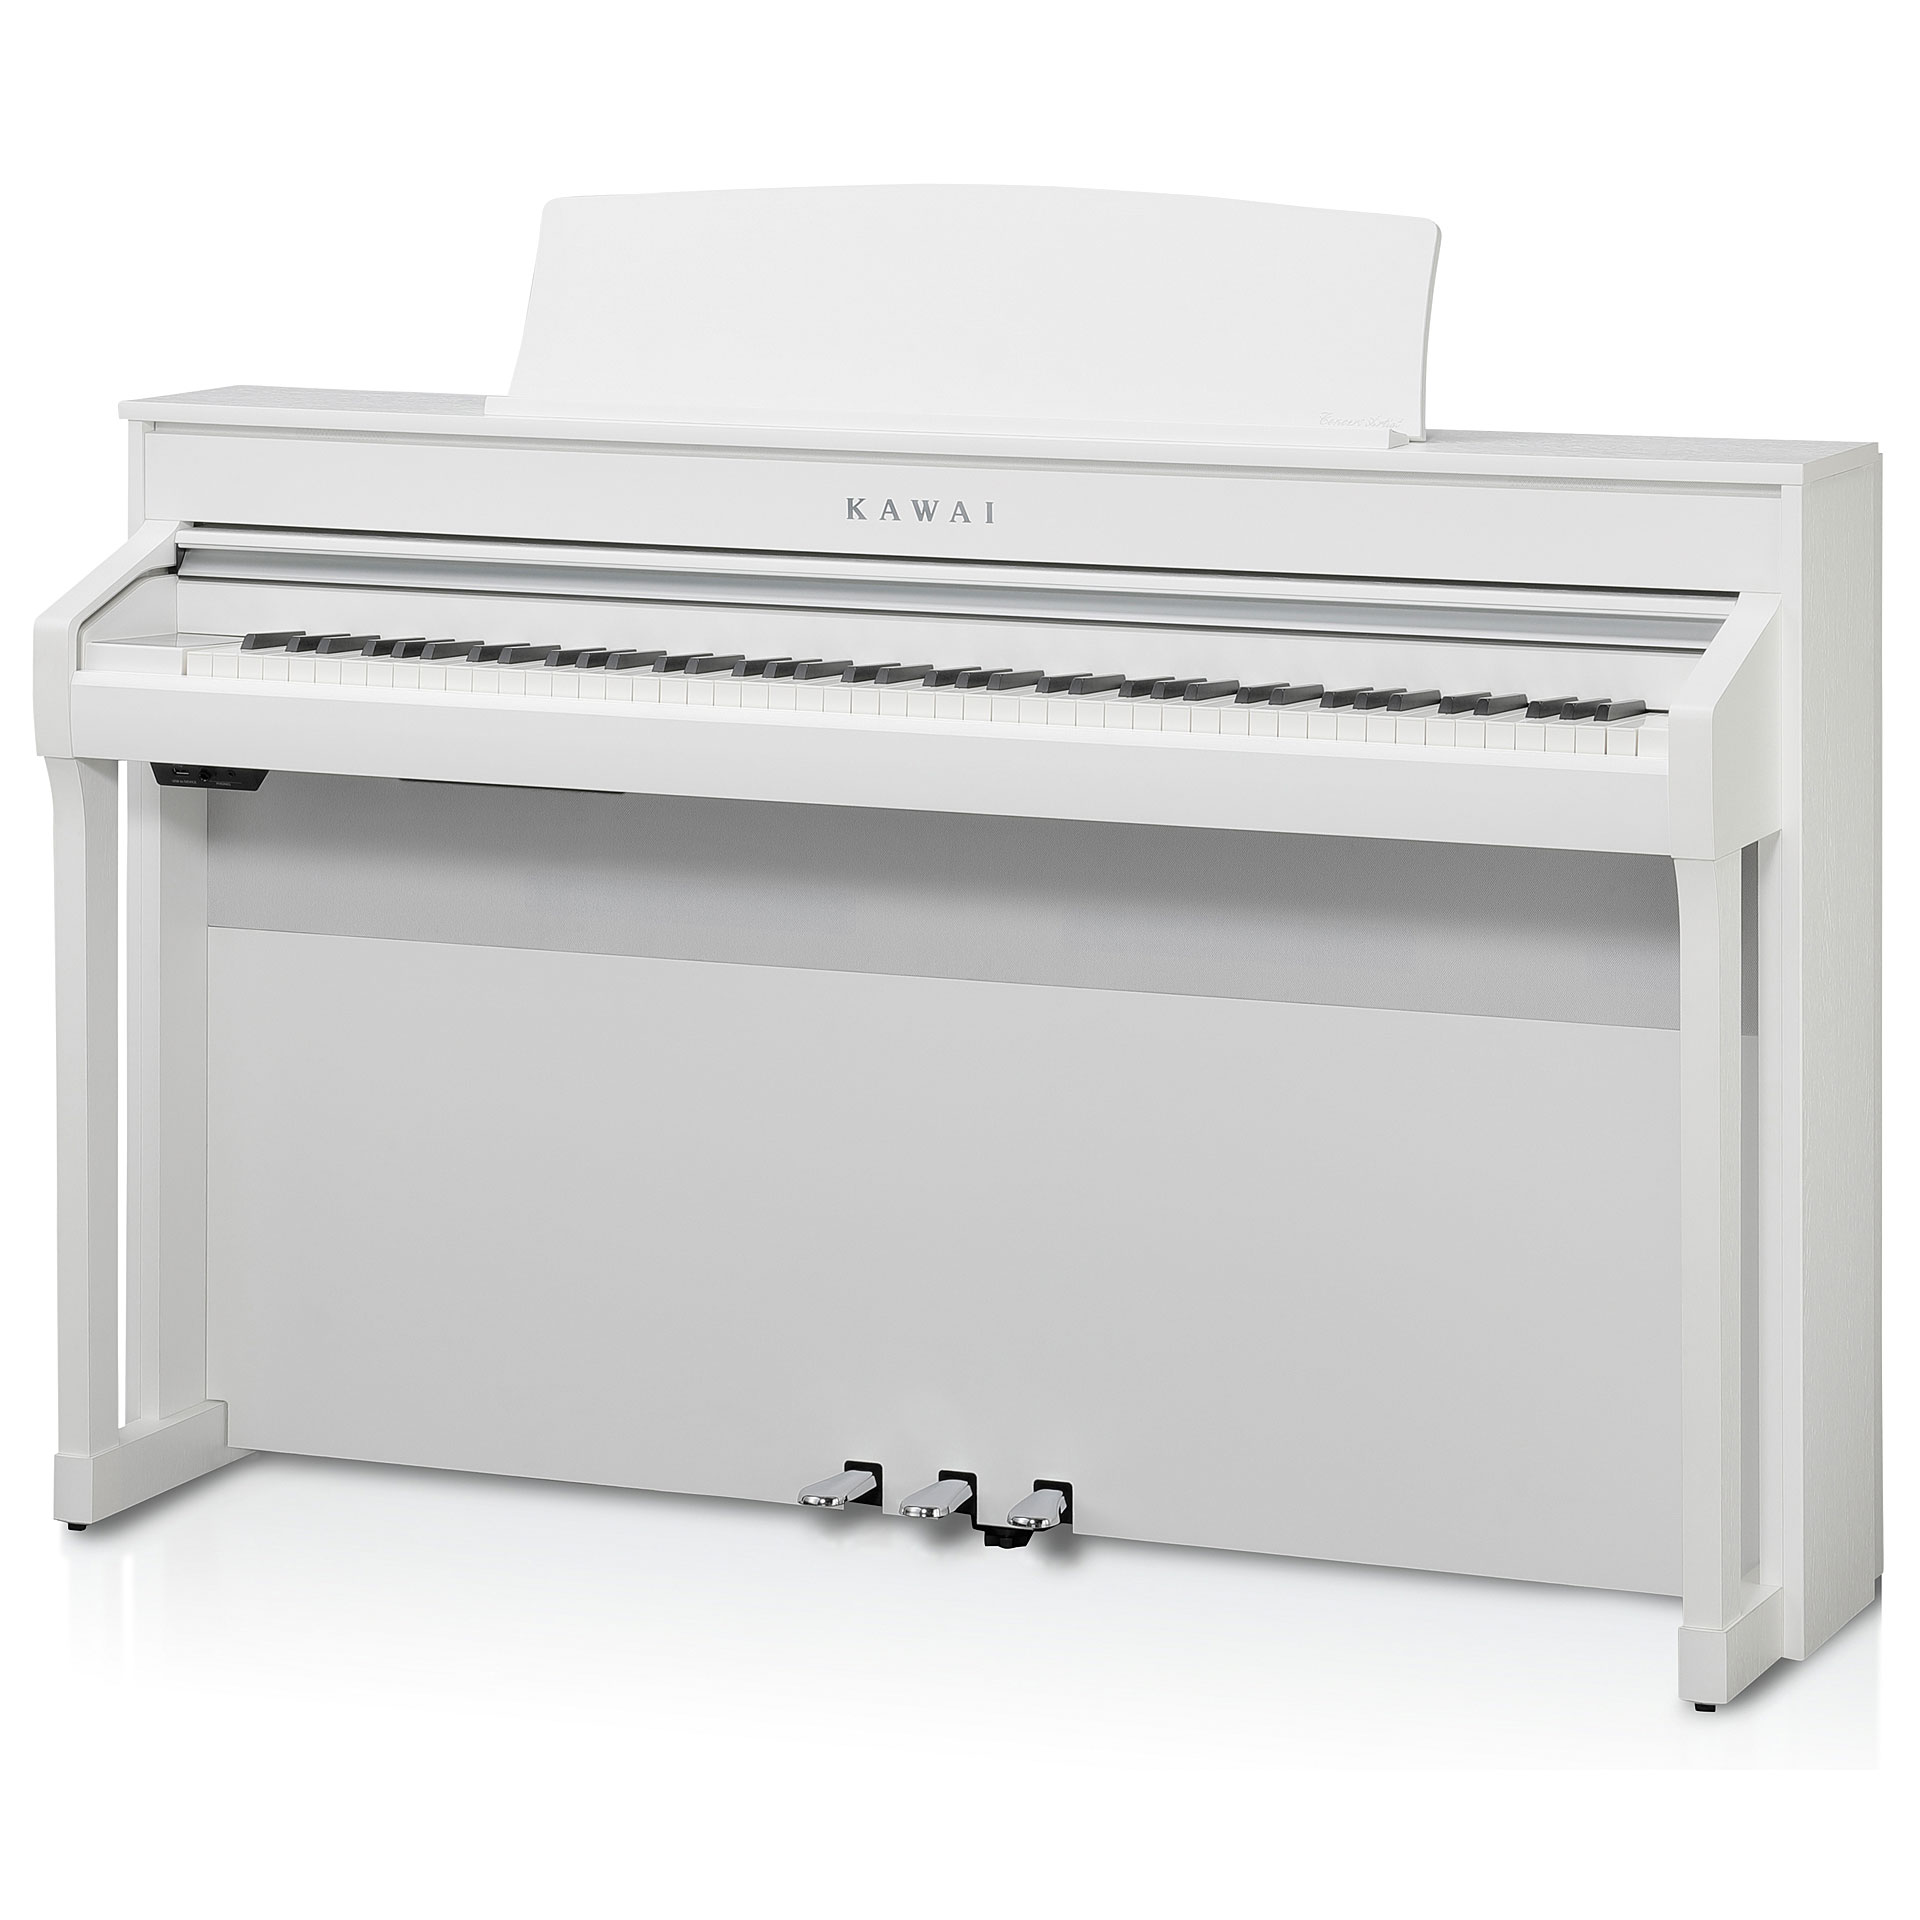 Kawai ca 98 w piano num rique for 2 box auto separati piani gratuiti